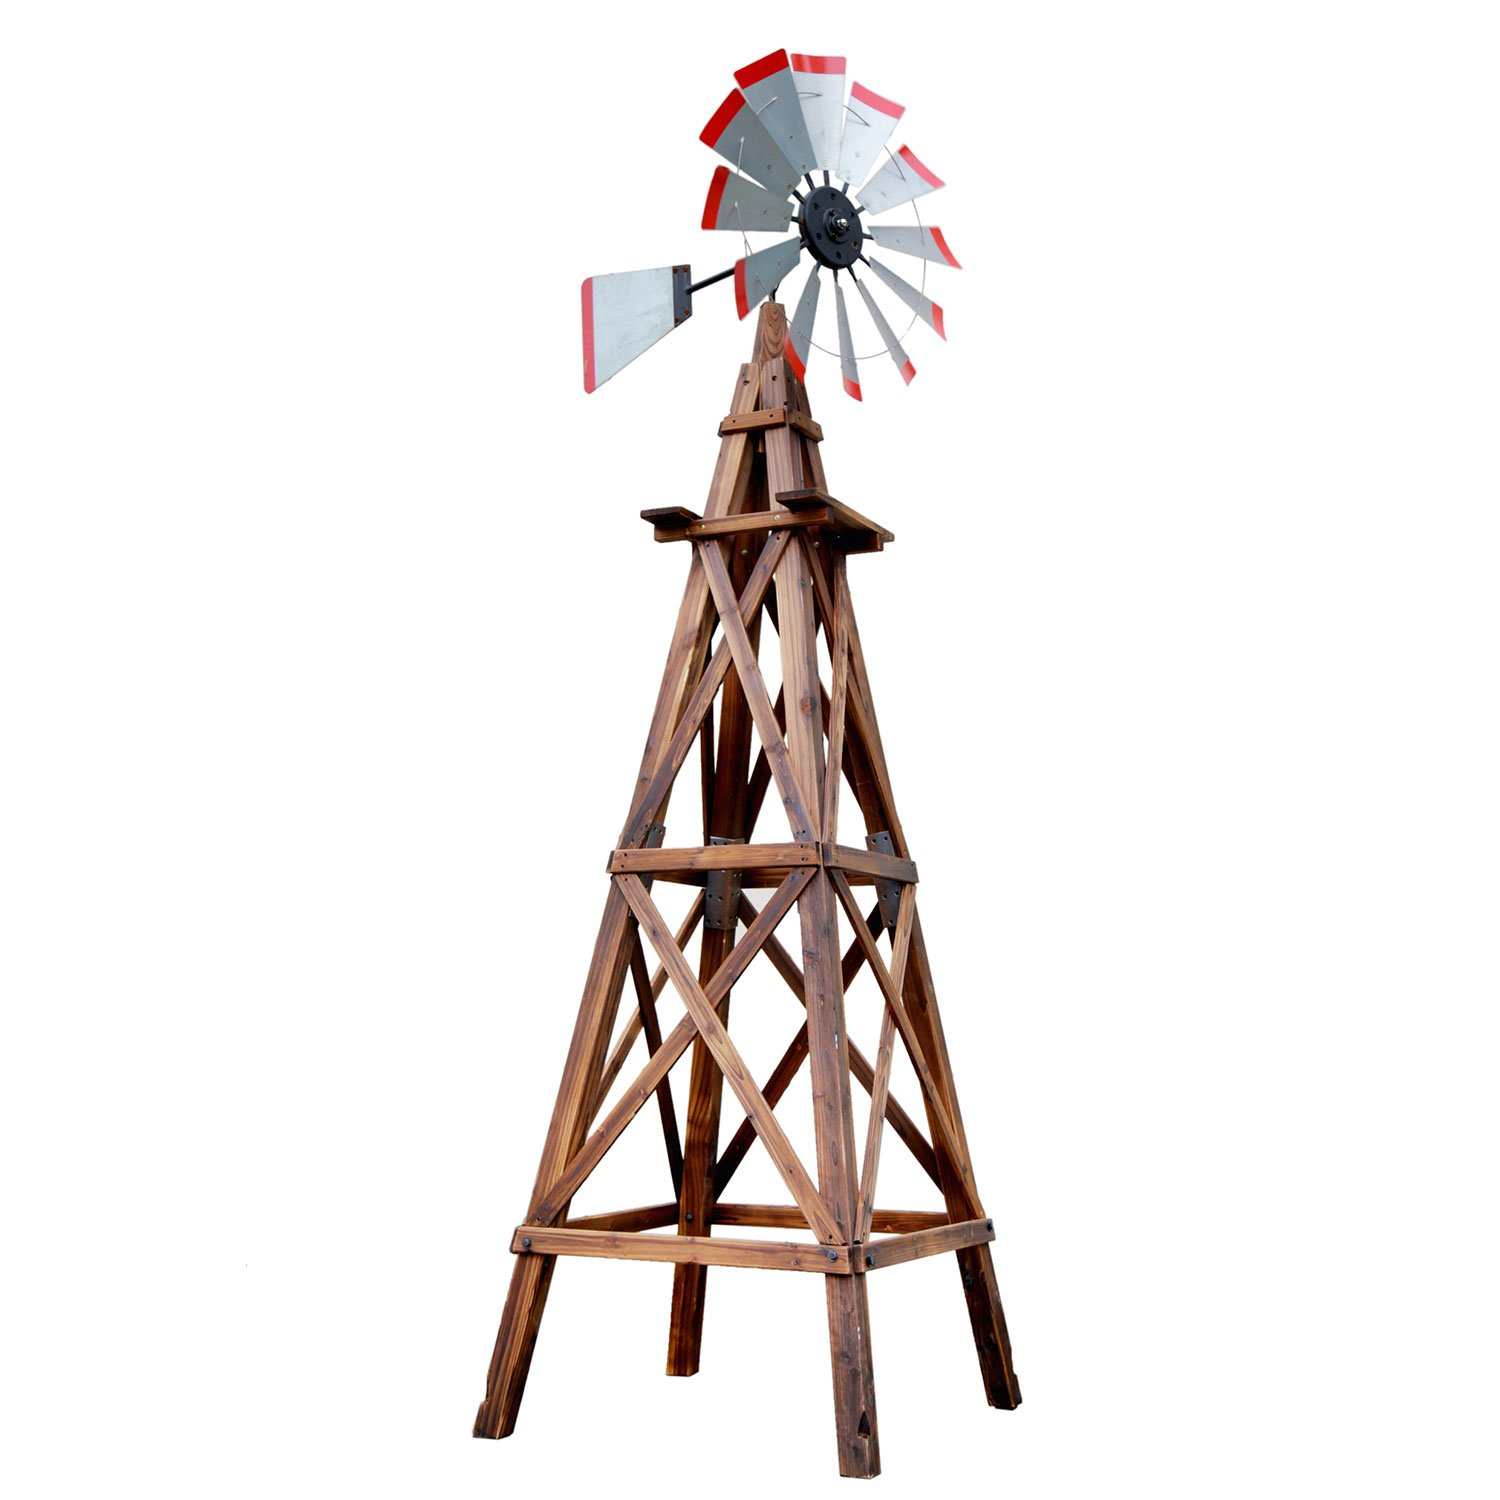 Songsen Outdoor Wood 9FT Torched Wooden Windmill by Songsen